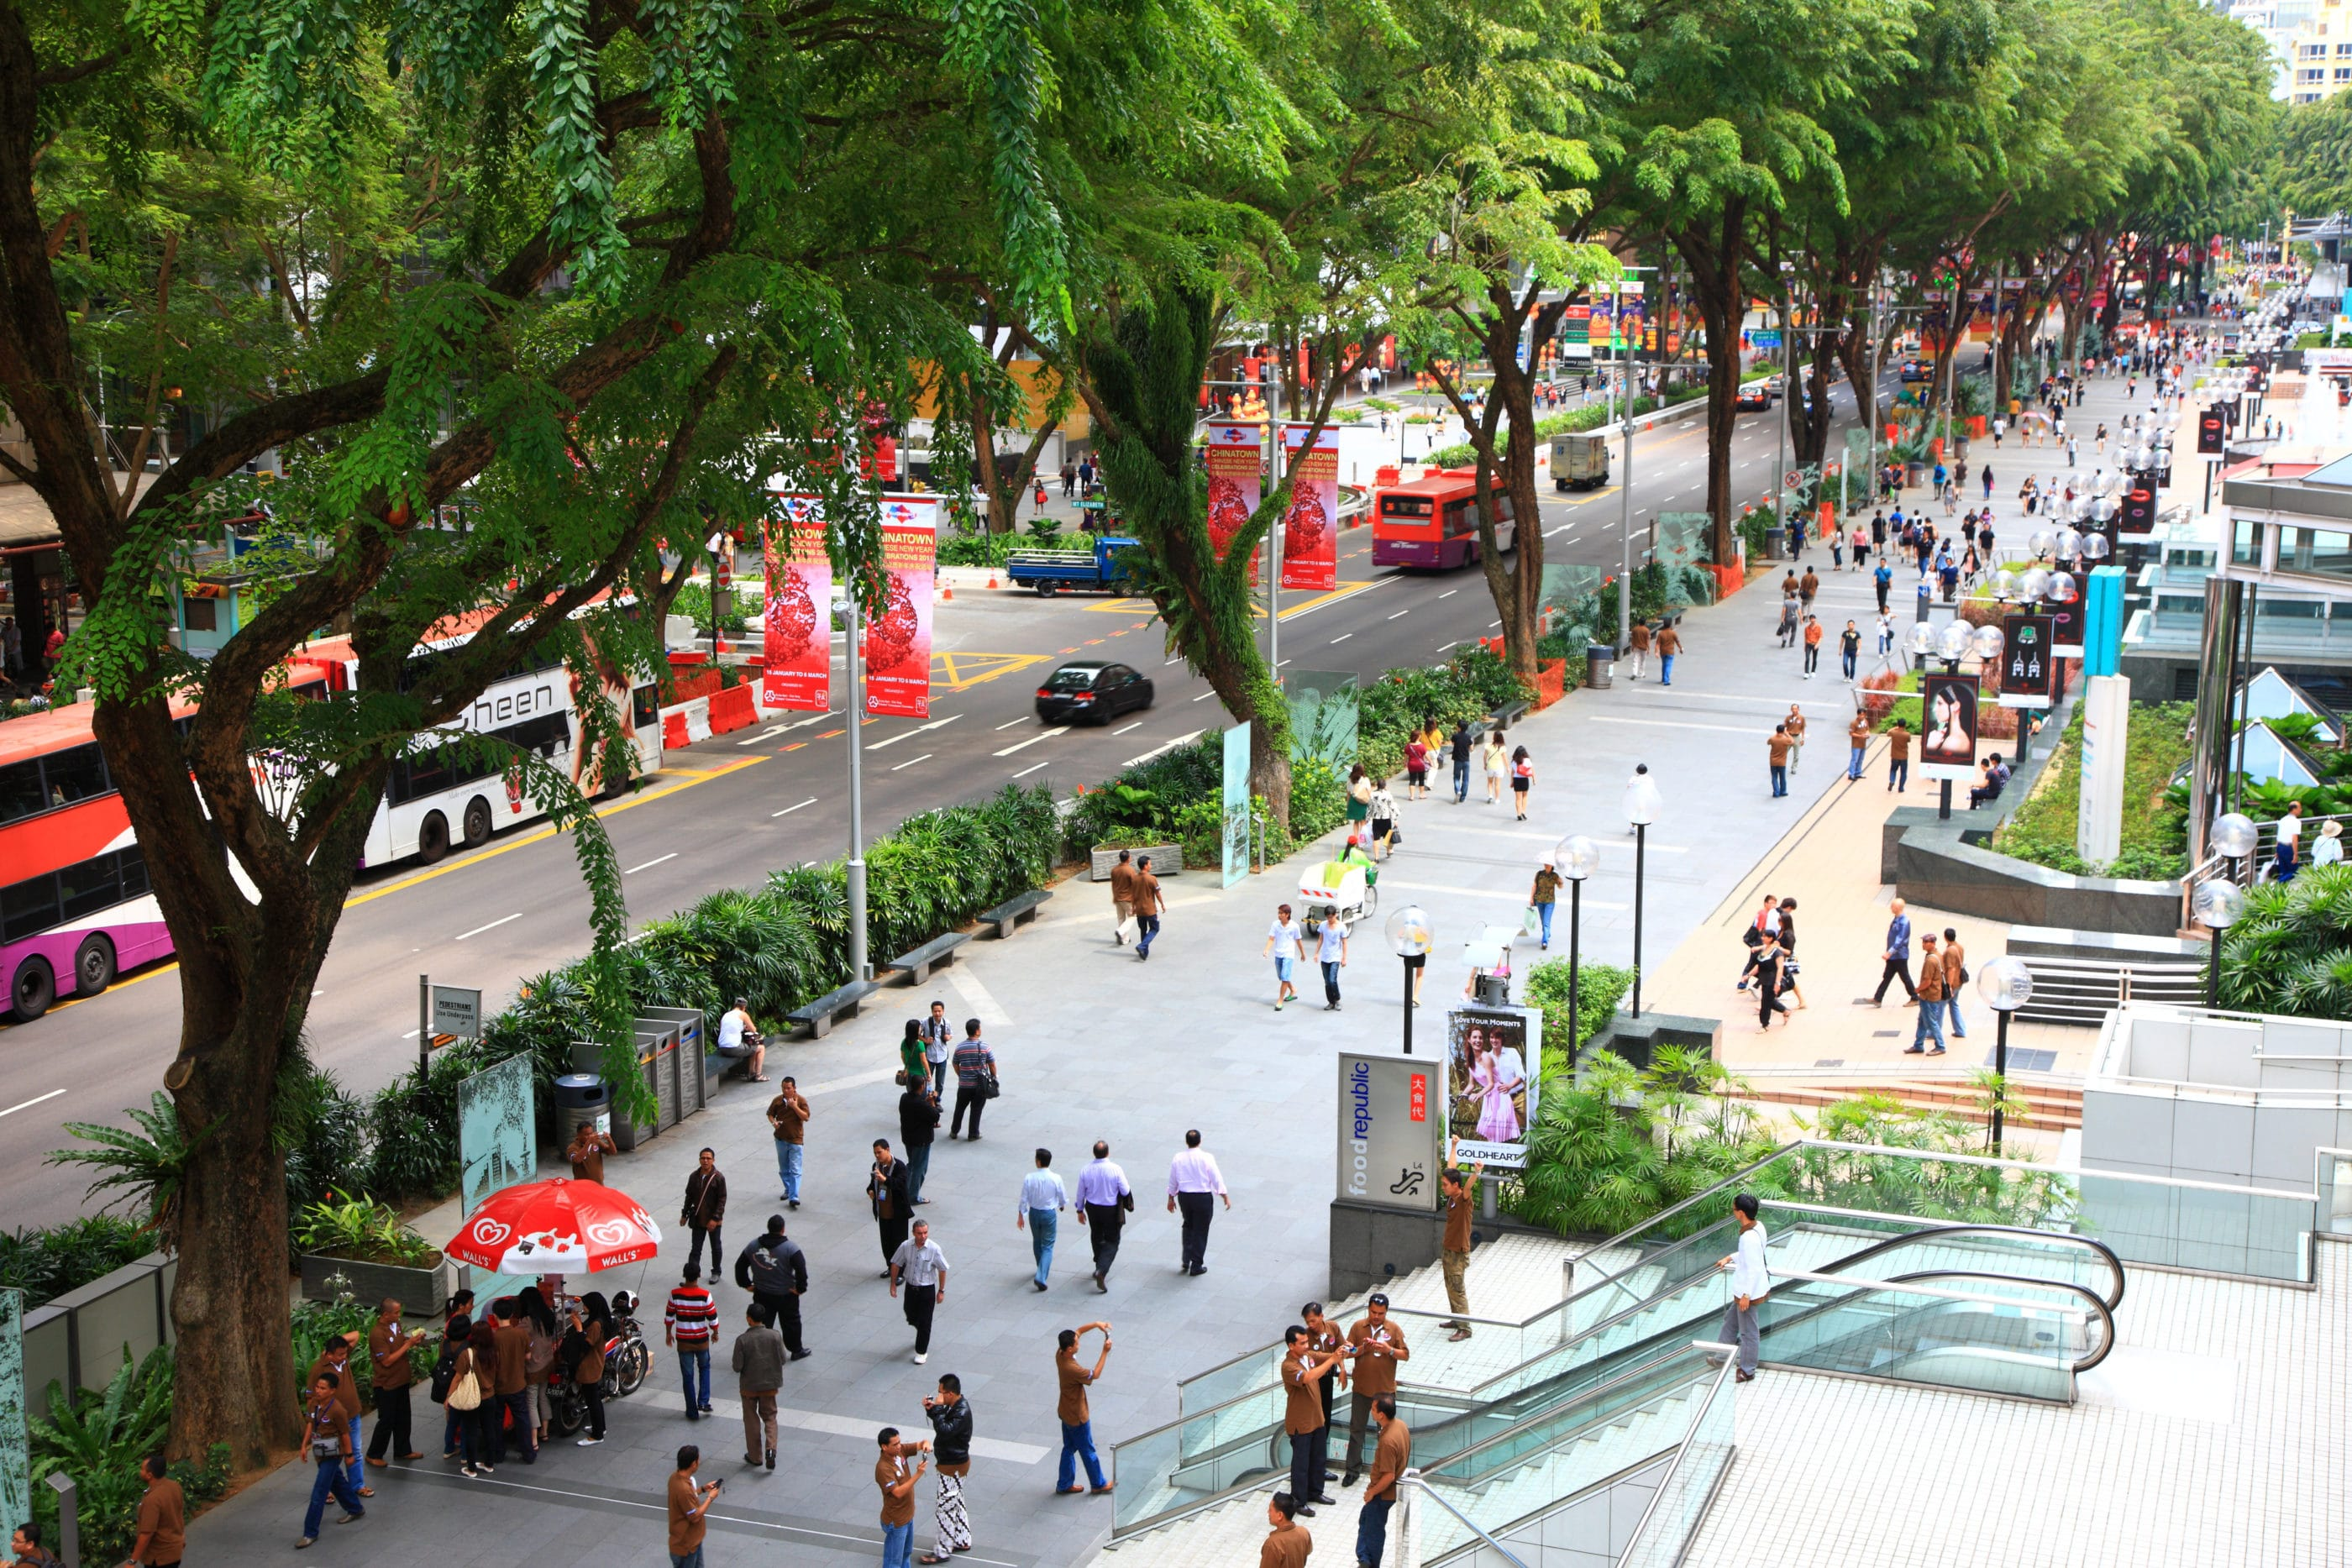 Things to do in Singapore: Go shopping on Orchard Road